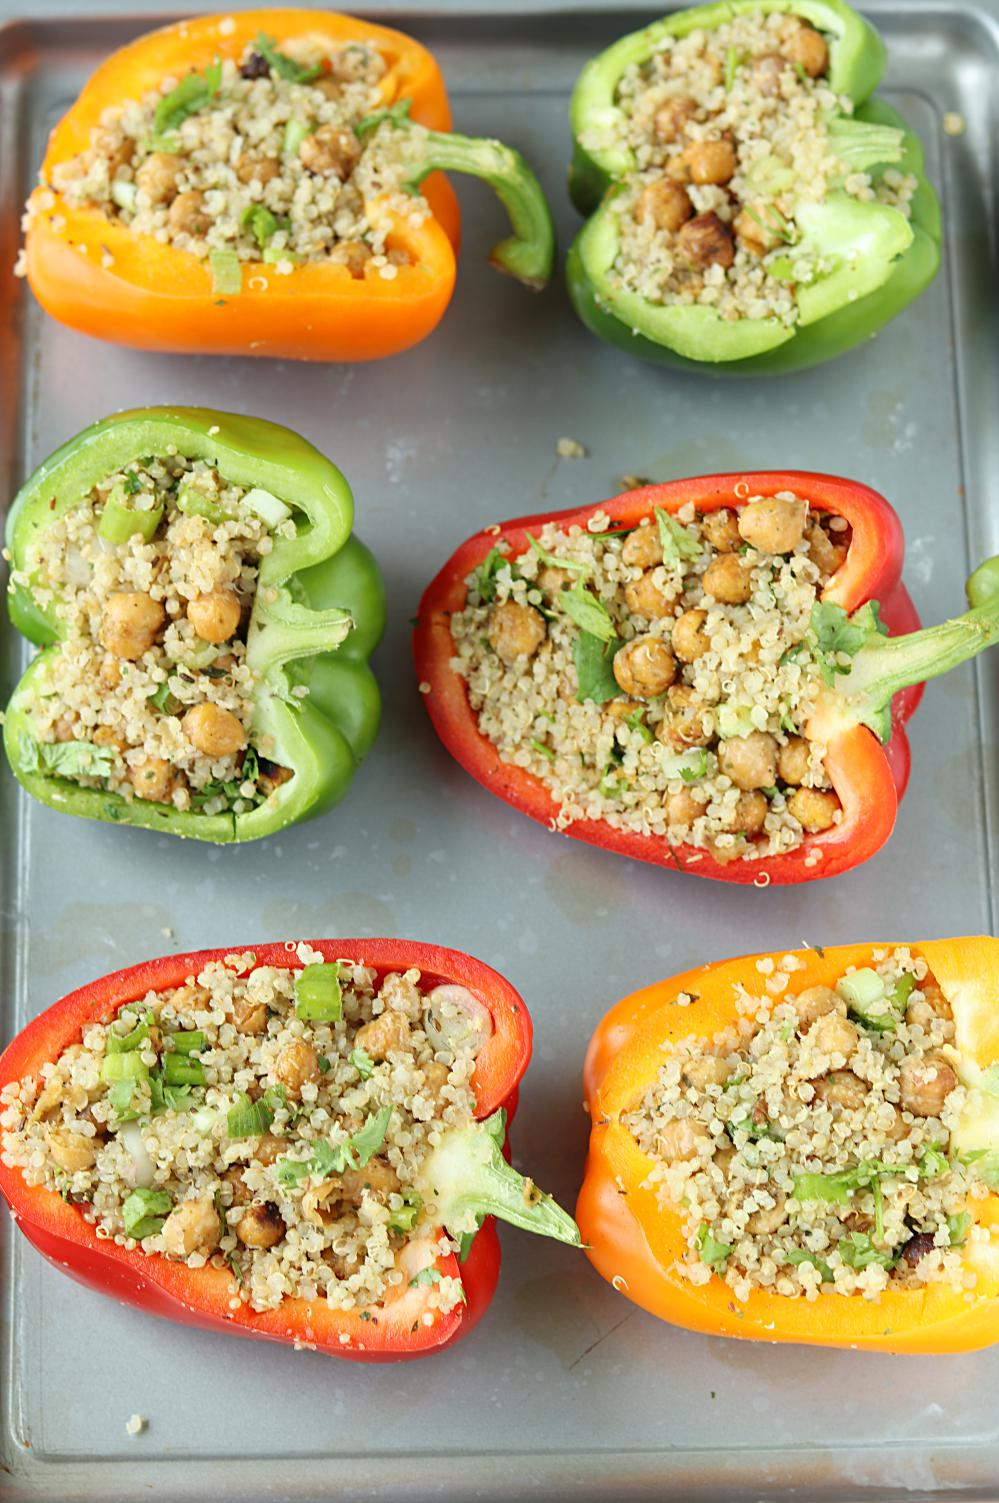 Roasted Chickpeas And Quinoa Stuffed Bell Peppers Stuffed